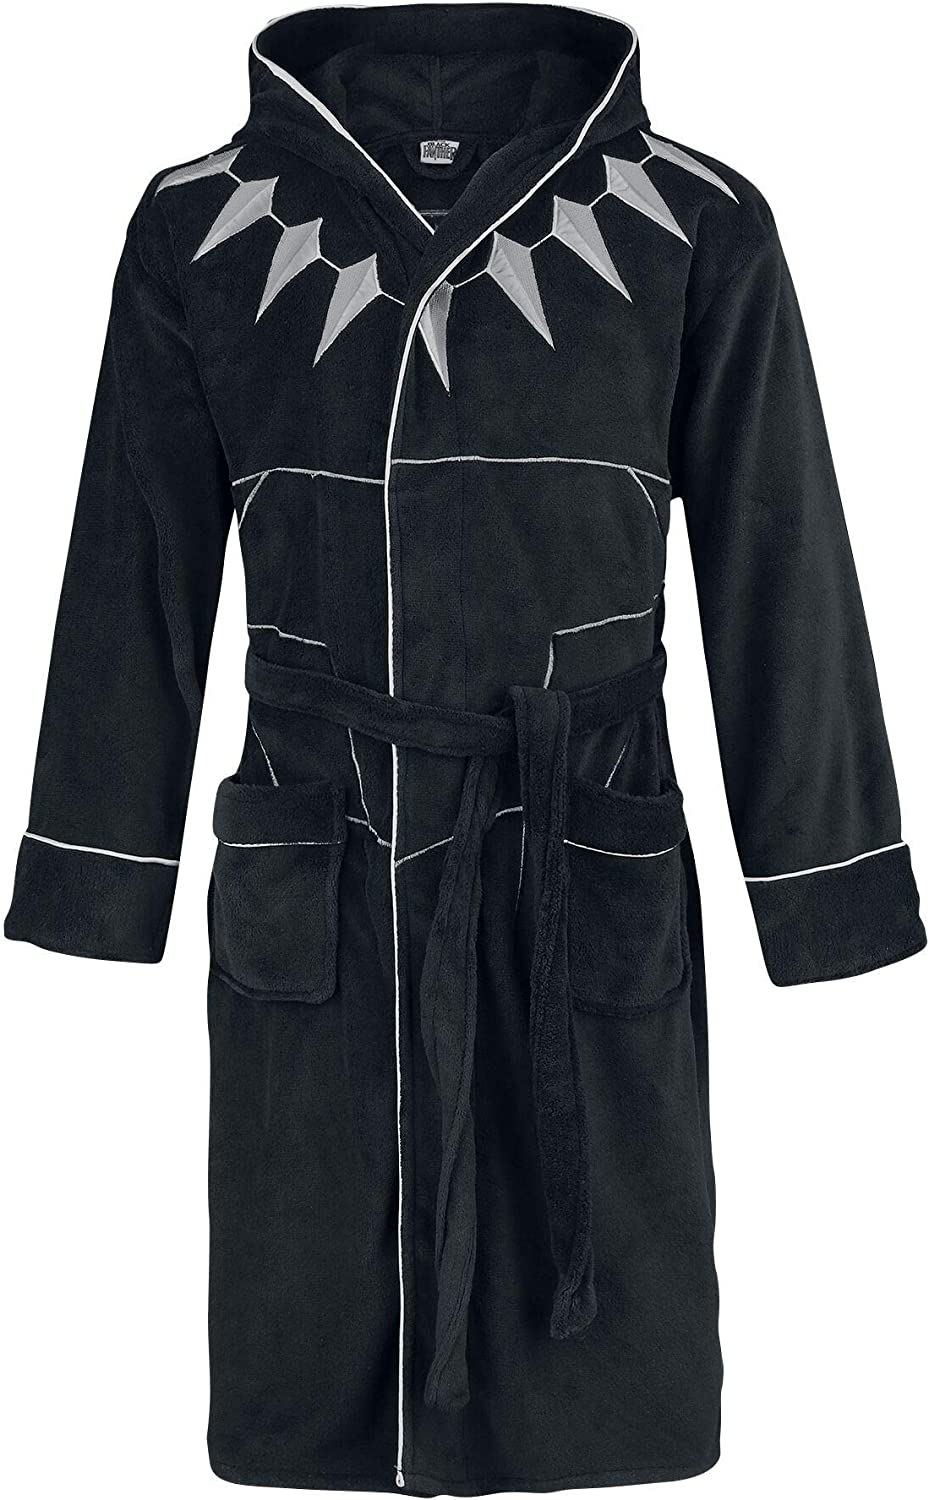 Official Black Panther Bathrobe/Dressing Gown